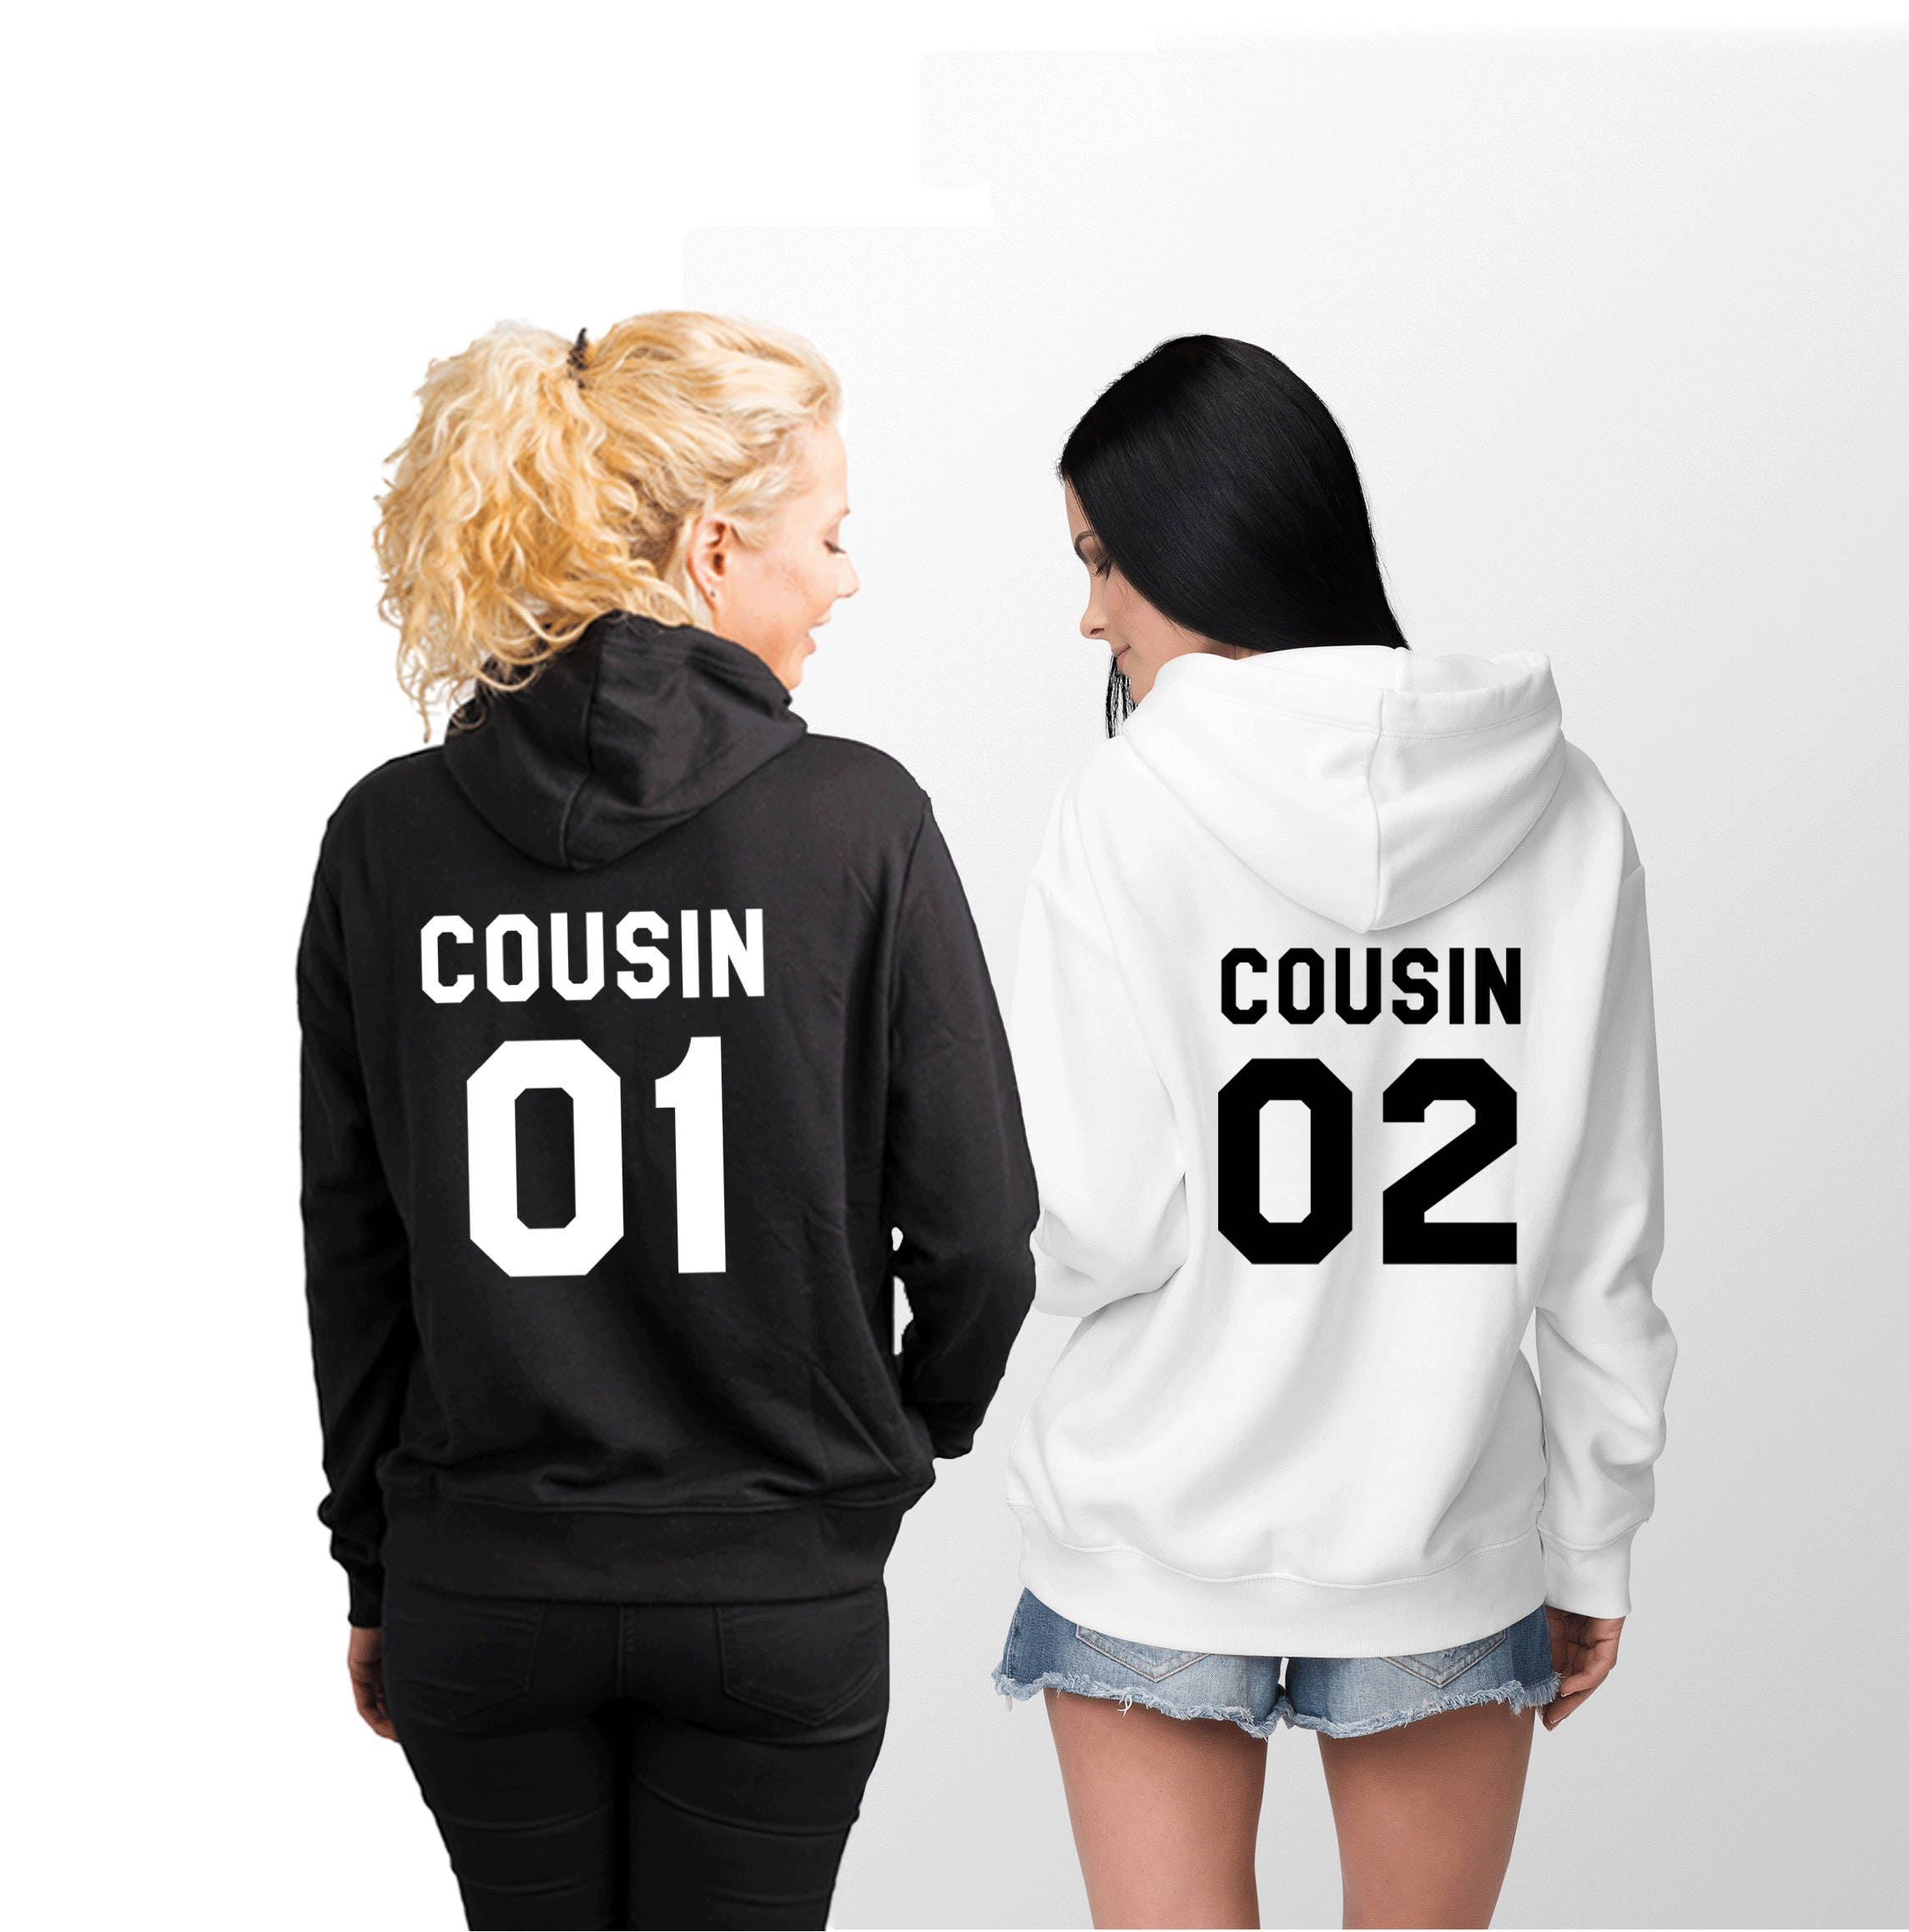 Cousin 01 Cousin 02 Hoodies passende Hoodies Familie | Etsy